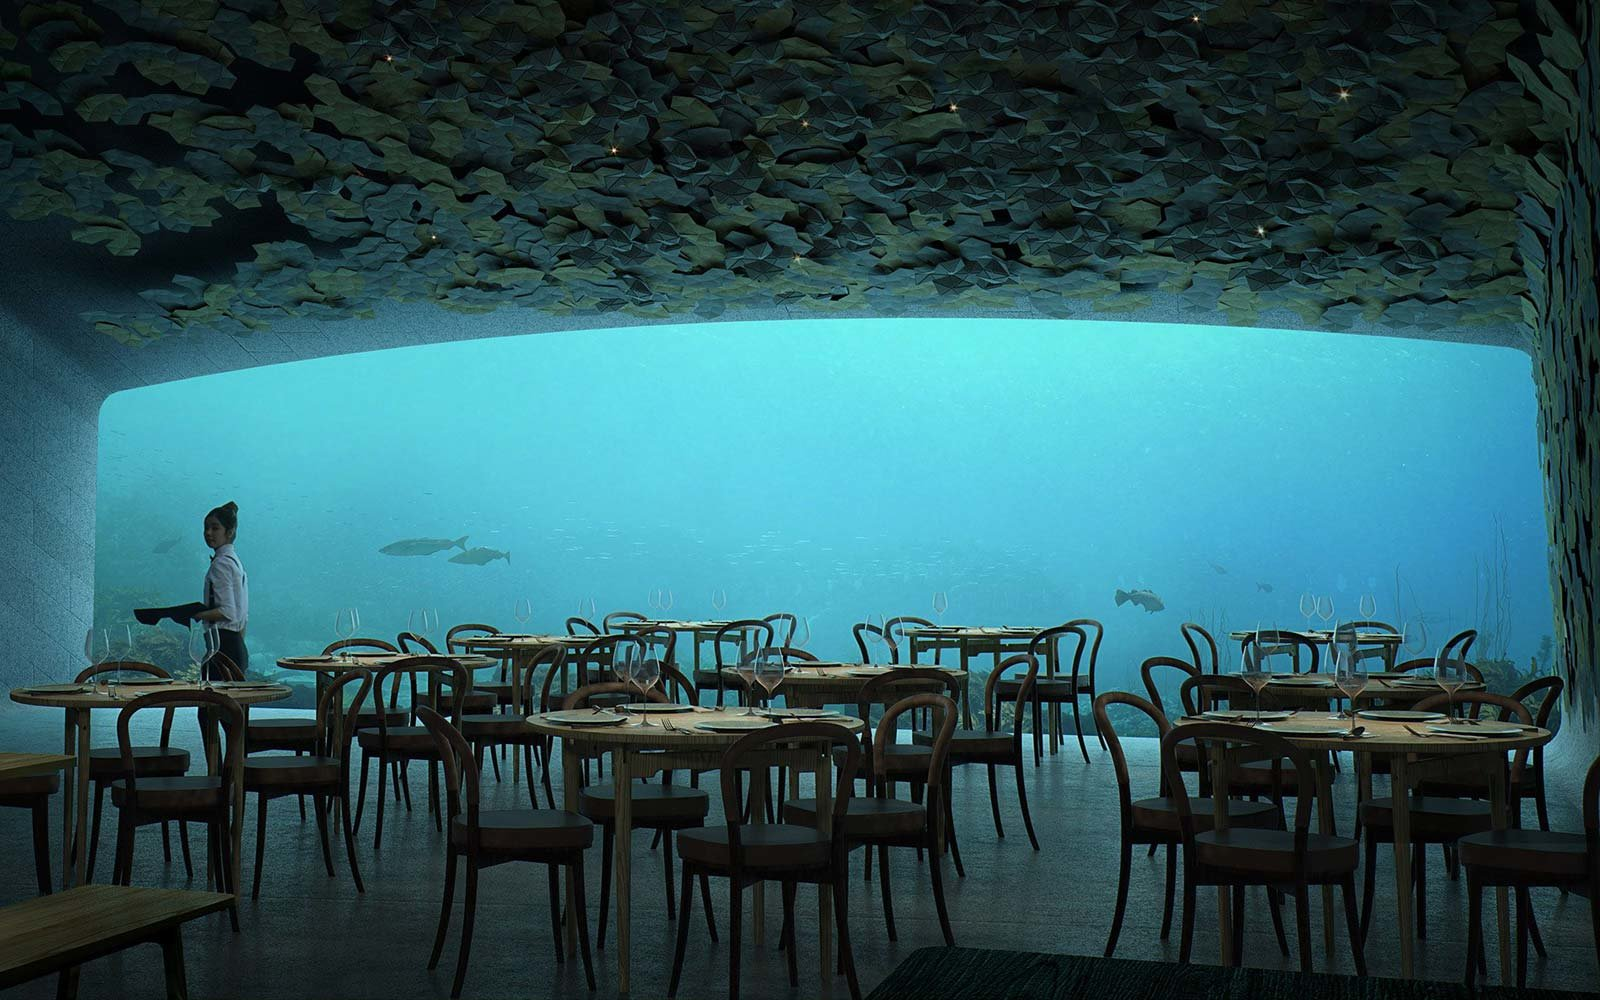 World Largest Underwater Restaurant